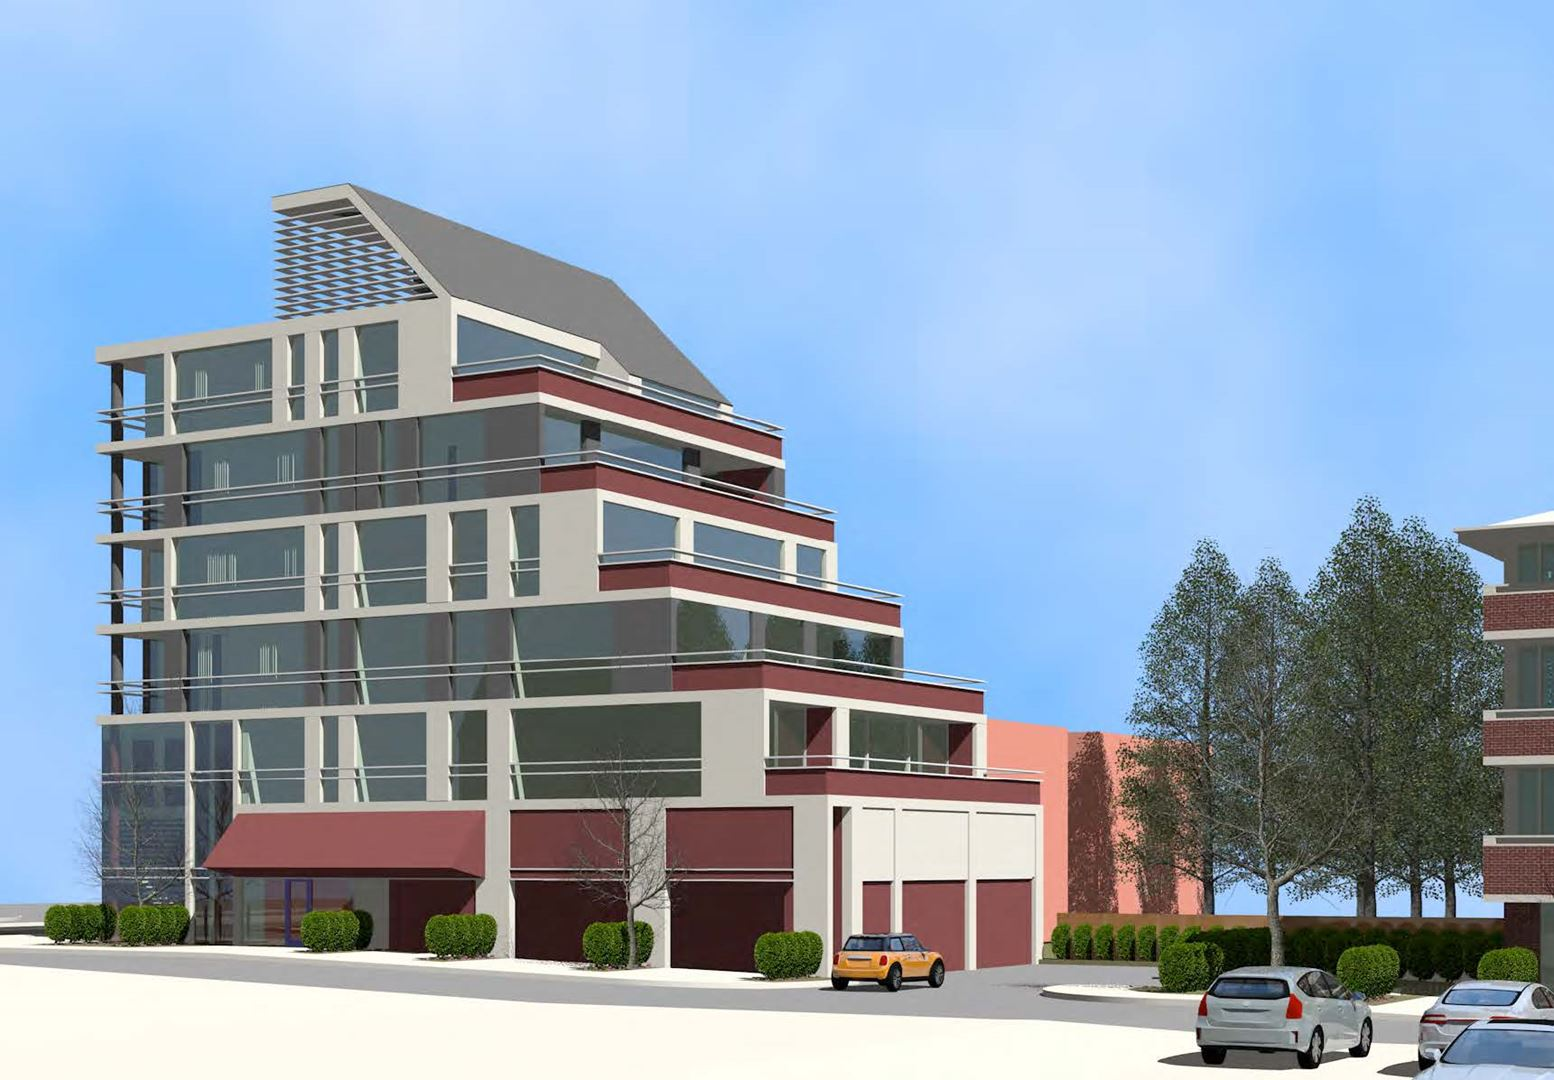 Exterior side-view rendering of 3471 Lake Shore Boulevard West Condos in Etobicoke.